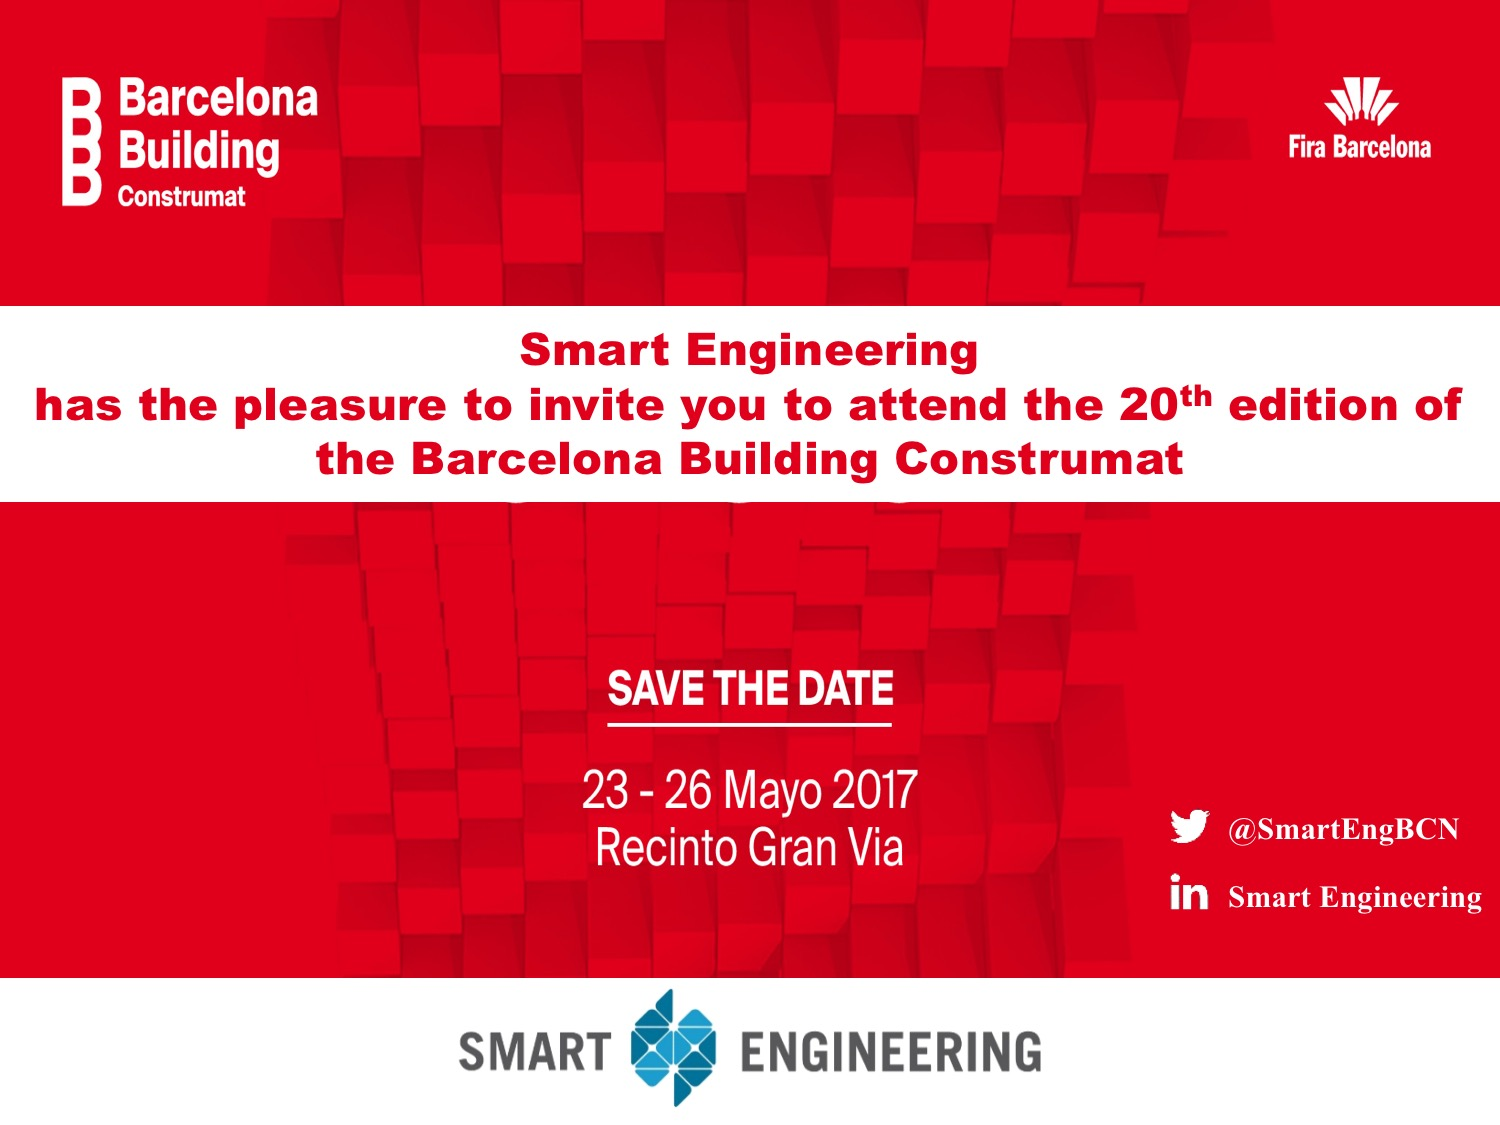 Smart Engineering participa en el 20è BBConstrumat